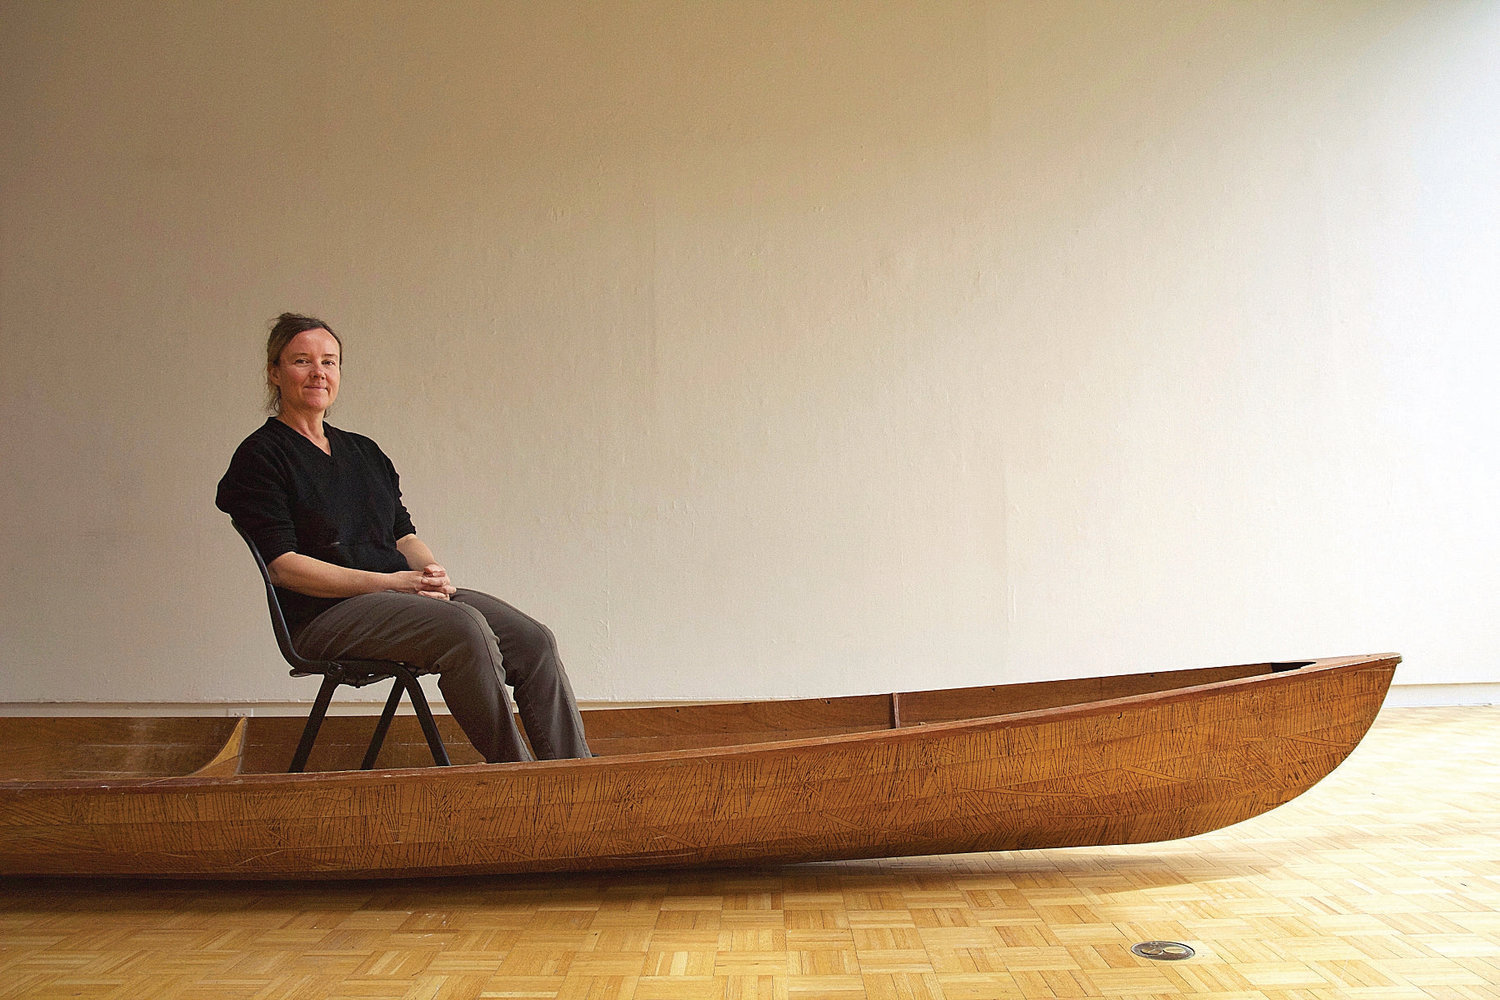 Marie Lorenz sits for a portrait in one of her handmade boats that she uses to explore urban waterways, collect trash and experience the world. Lorenz's work was exhibited in the Suzanne Lemberg Usdan Gallery at Bennington College earlier this spring in preparation for Lorenz and gallery director and curator, Anne Thompson, to travel down the Hoosic and Hudson rivers all the way to New York. Photo by Elodie Reed.